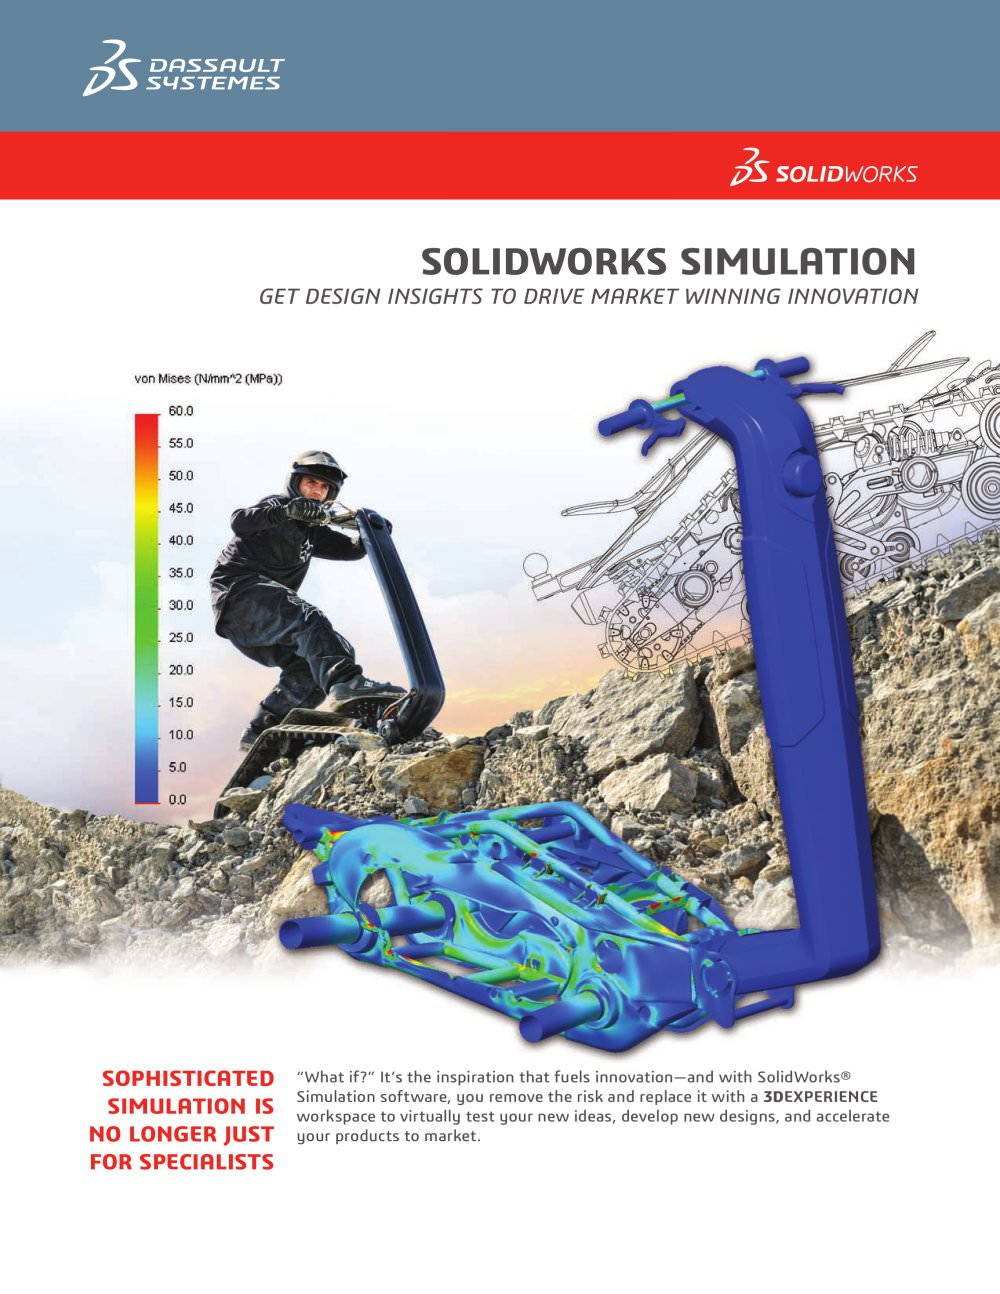 Solidworks simulation 2013 dassault systmes solidworks corp solidworks simulation 2013 1 6 pages baditri Images